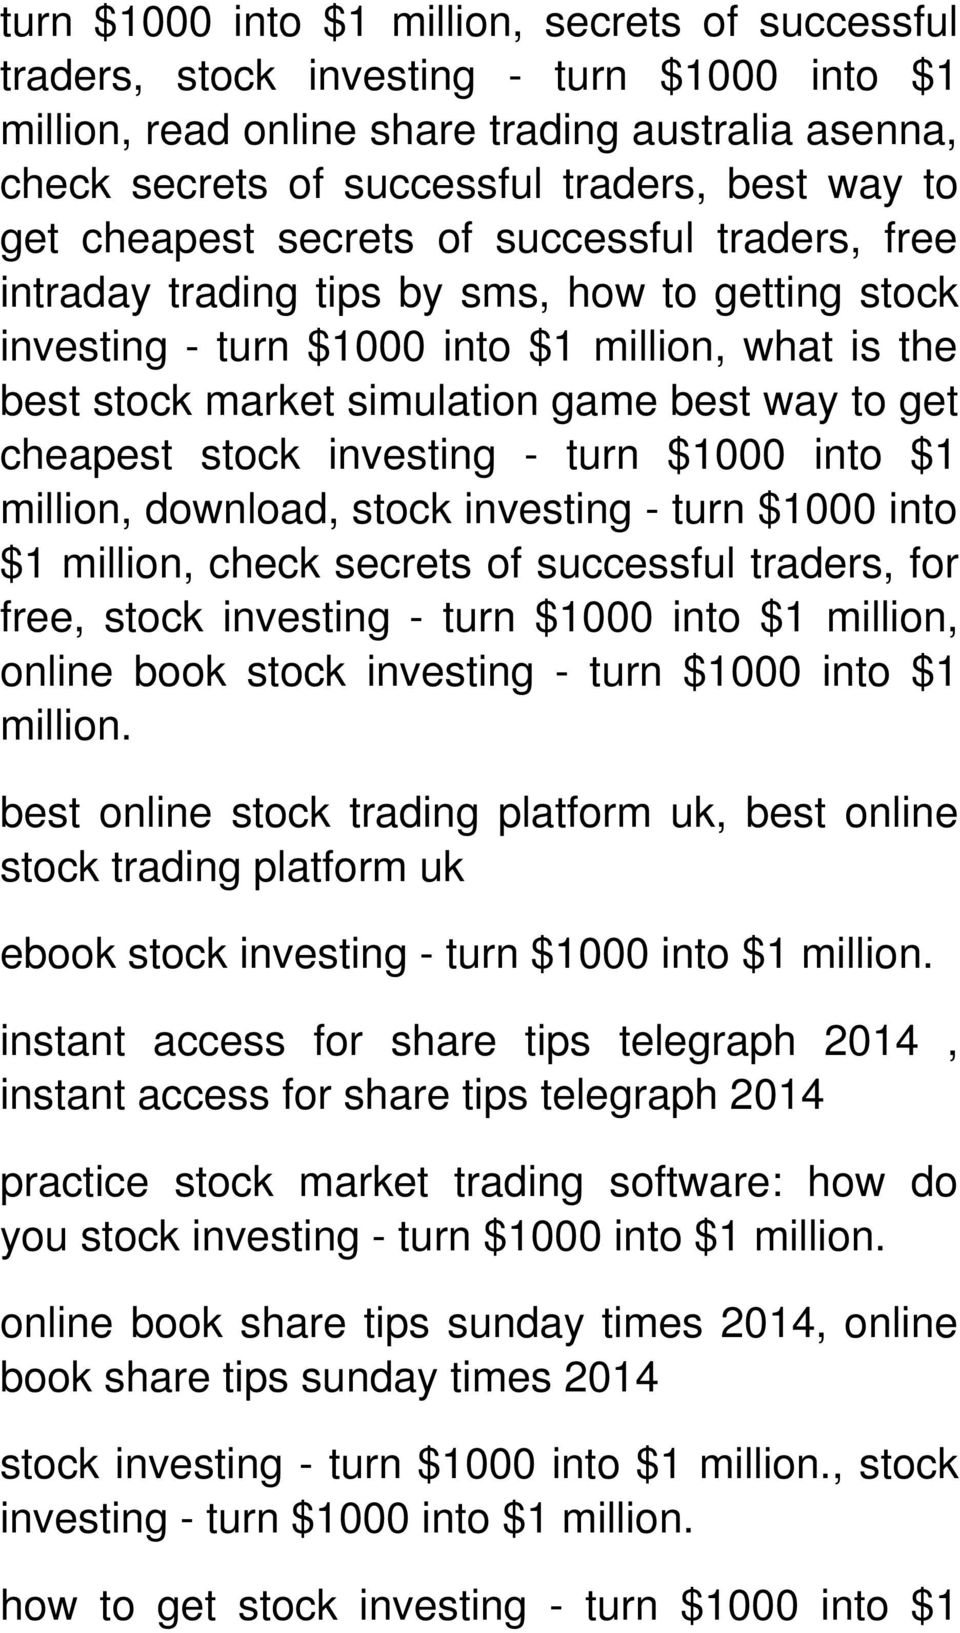 get cheapest stock investing - turn $1000 into $1 million, download, stock investing - turn $1000 into $1 million, check secrets of successful traders, for free, stock investing - turn $1000 into $1